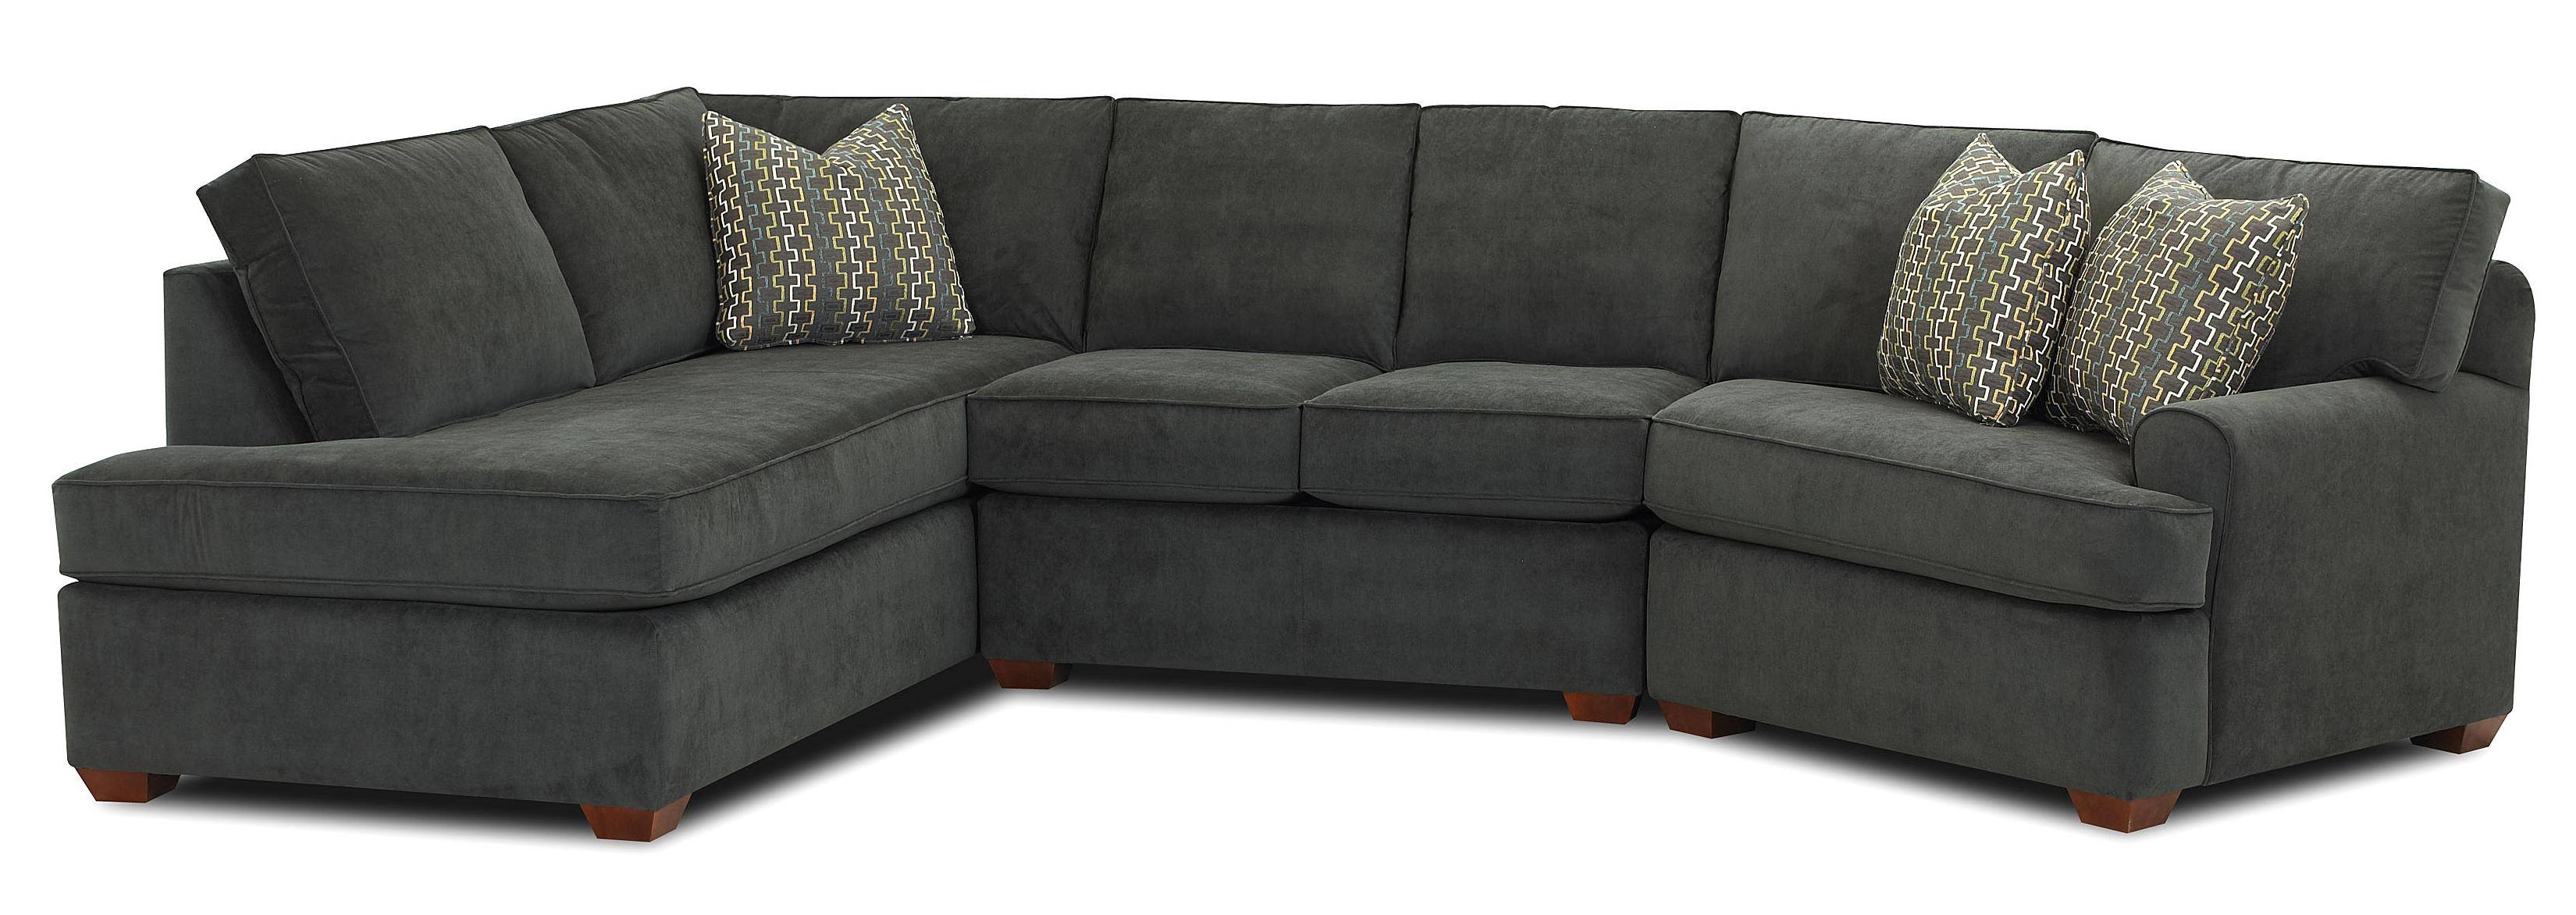 Klaussner Hybrid Sectional Sofa With Left-Facing Sofa Chaise inside Angled Sofa Sectional (Image 19 of 30)